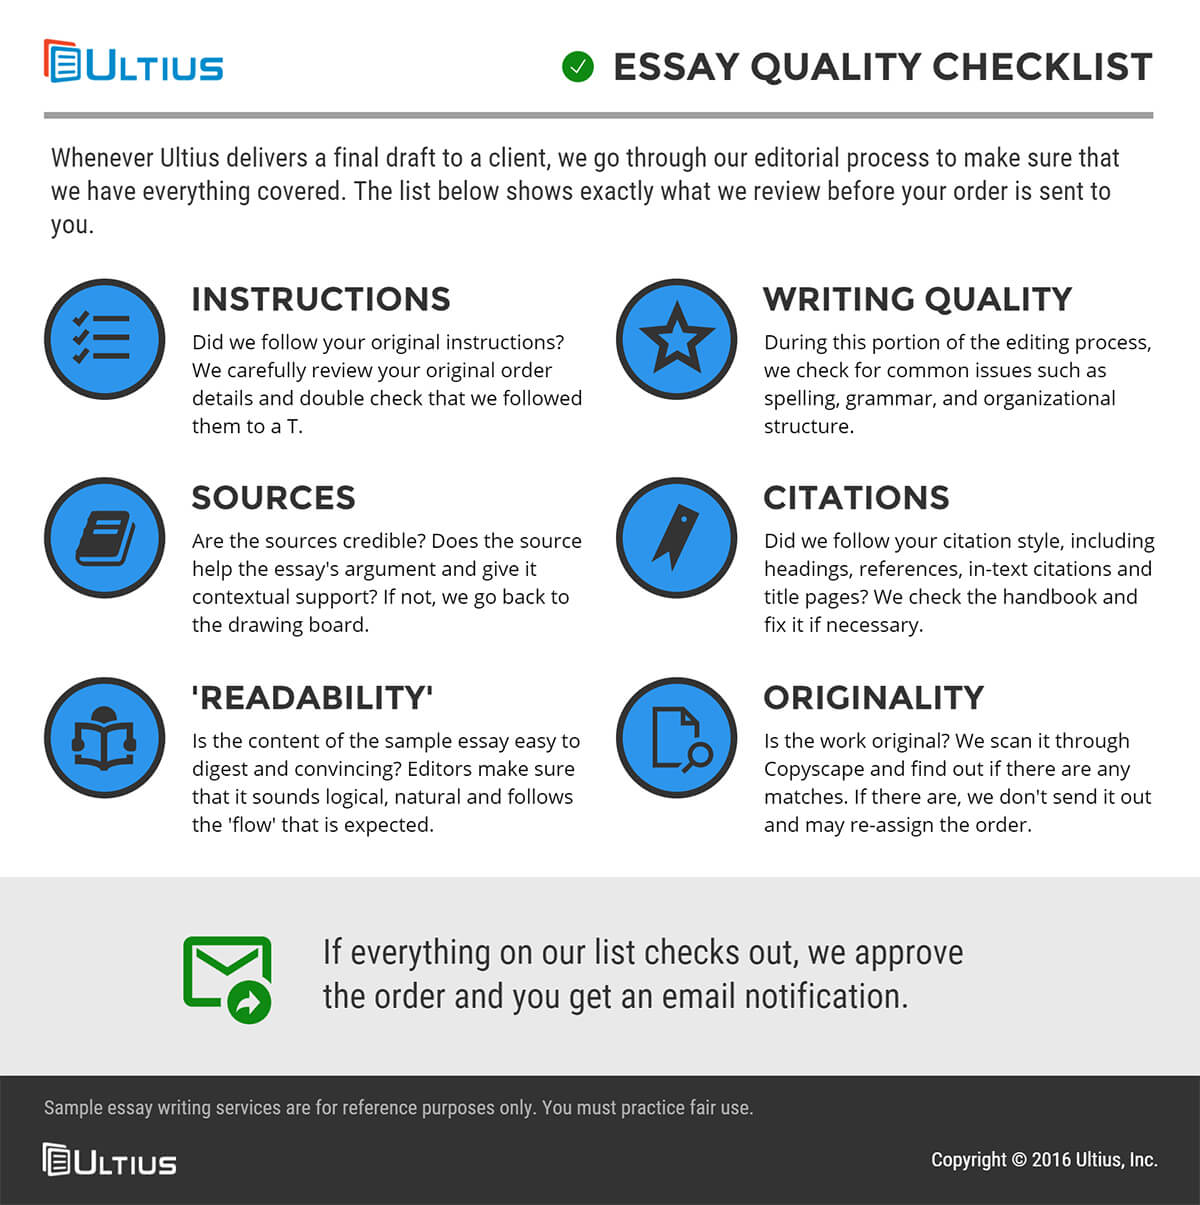 EXPOSITORY WRITING  Students underline or highlight using the     Argumentative Essay Quick Study  Home School Helps  REFERENCES  Reference  Cards   Mats  Quick Studies  All  English Writing  EXPOSITORY WRITING   Expository